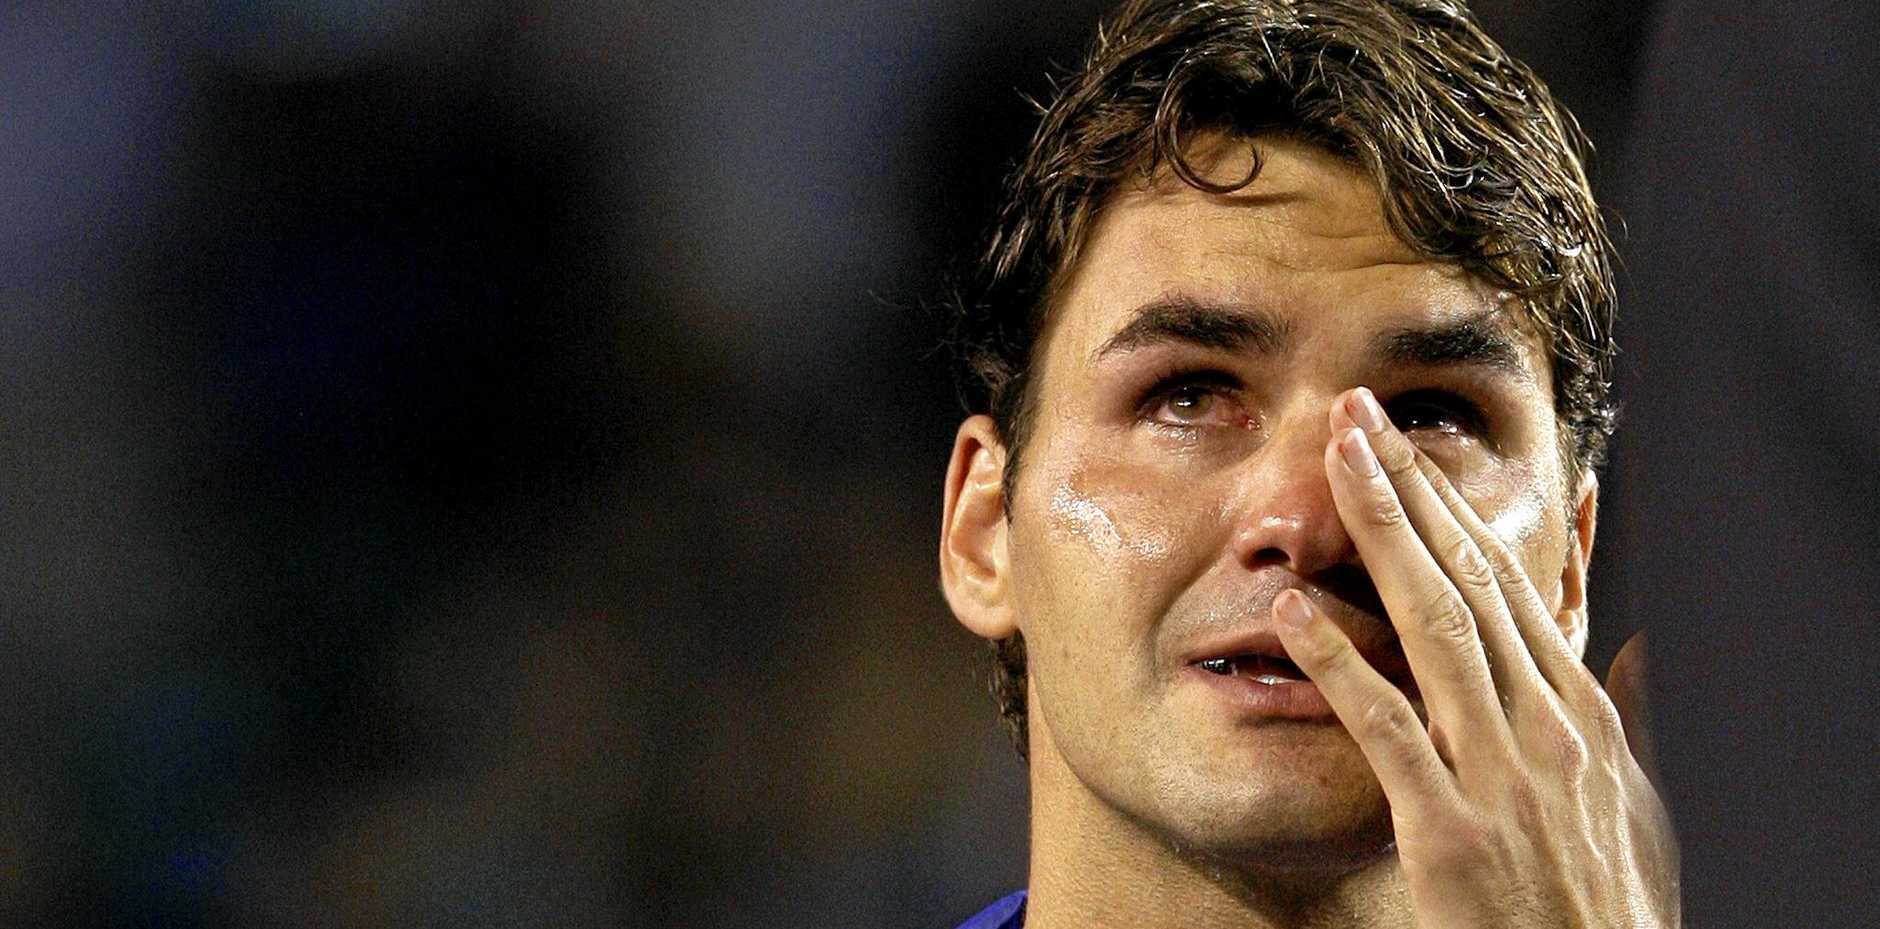 Roger Federer sheds tears after losing to Rafael Nadal in the final of the 2009 Australian Open tournament.